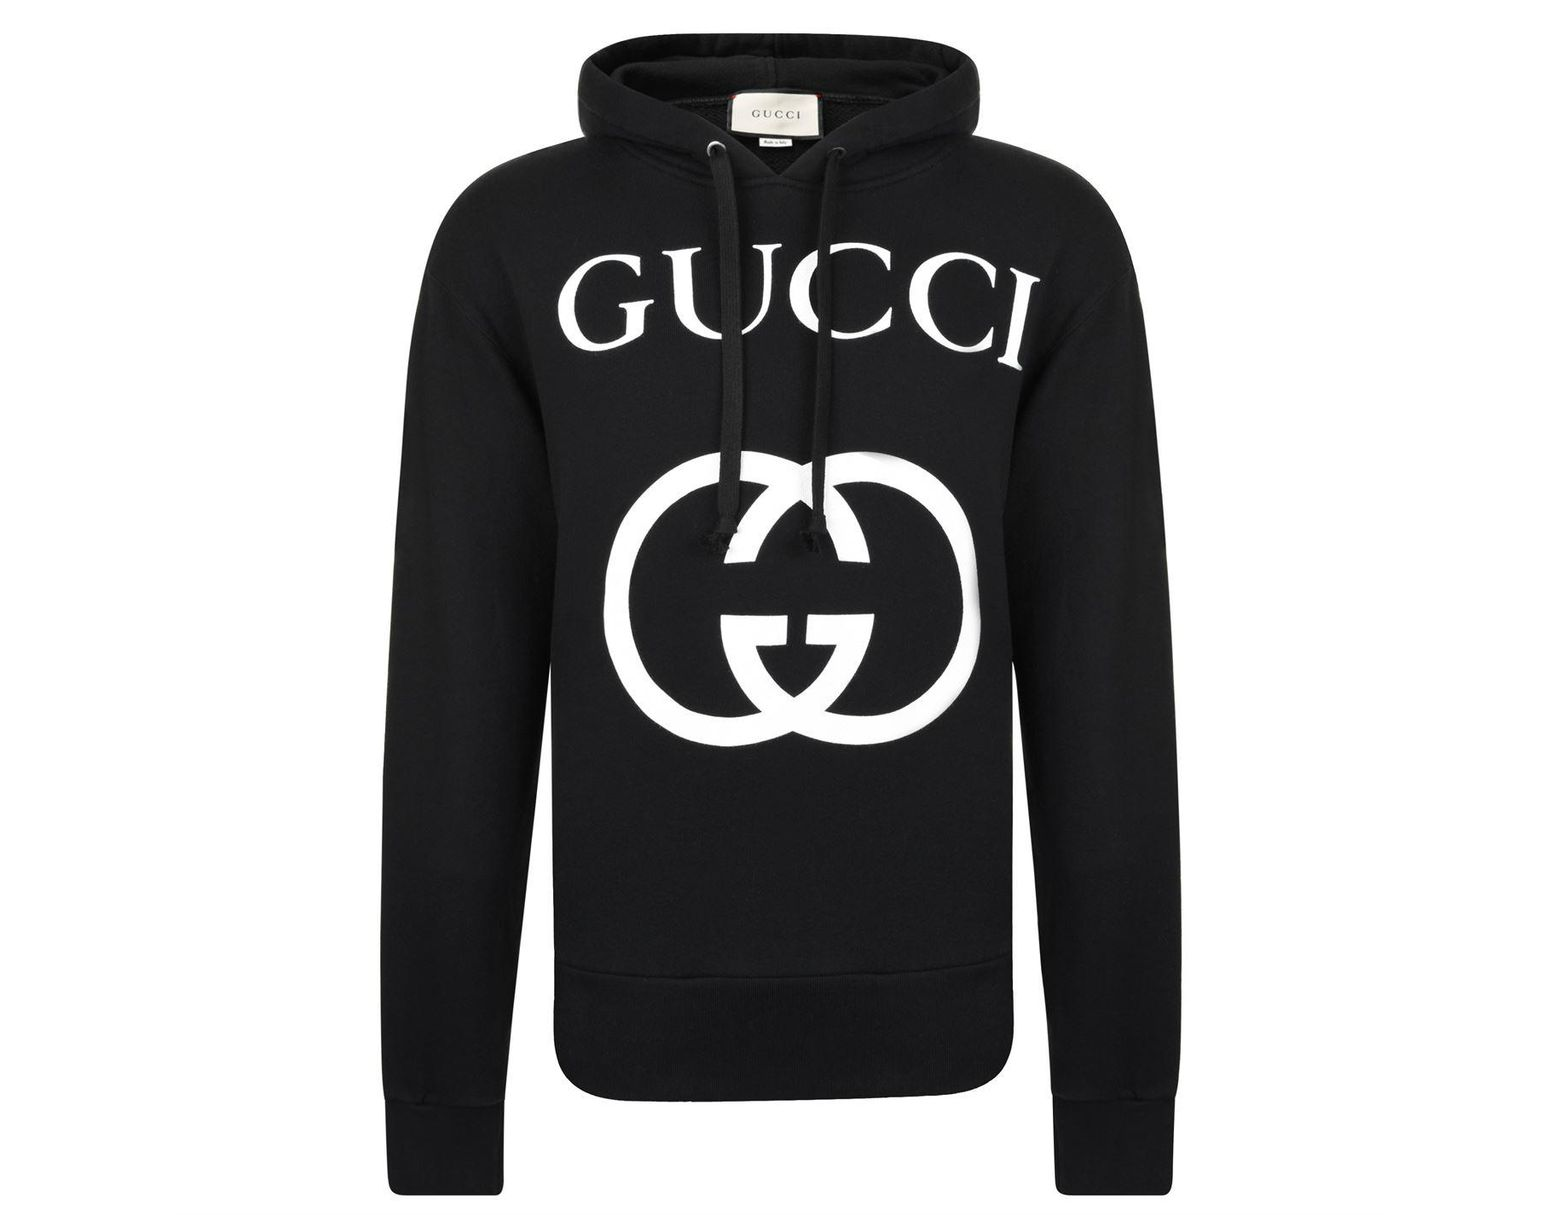 35d998bd8a0 Gucci Gg Hooded Sweatshirt in Black for Men - Save 30% - Lyst